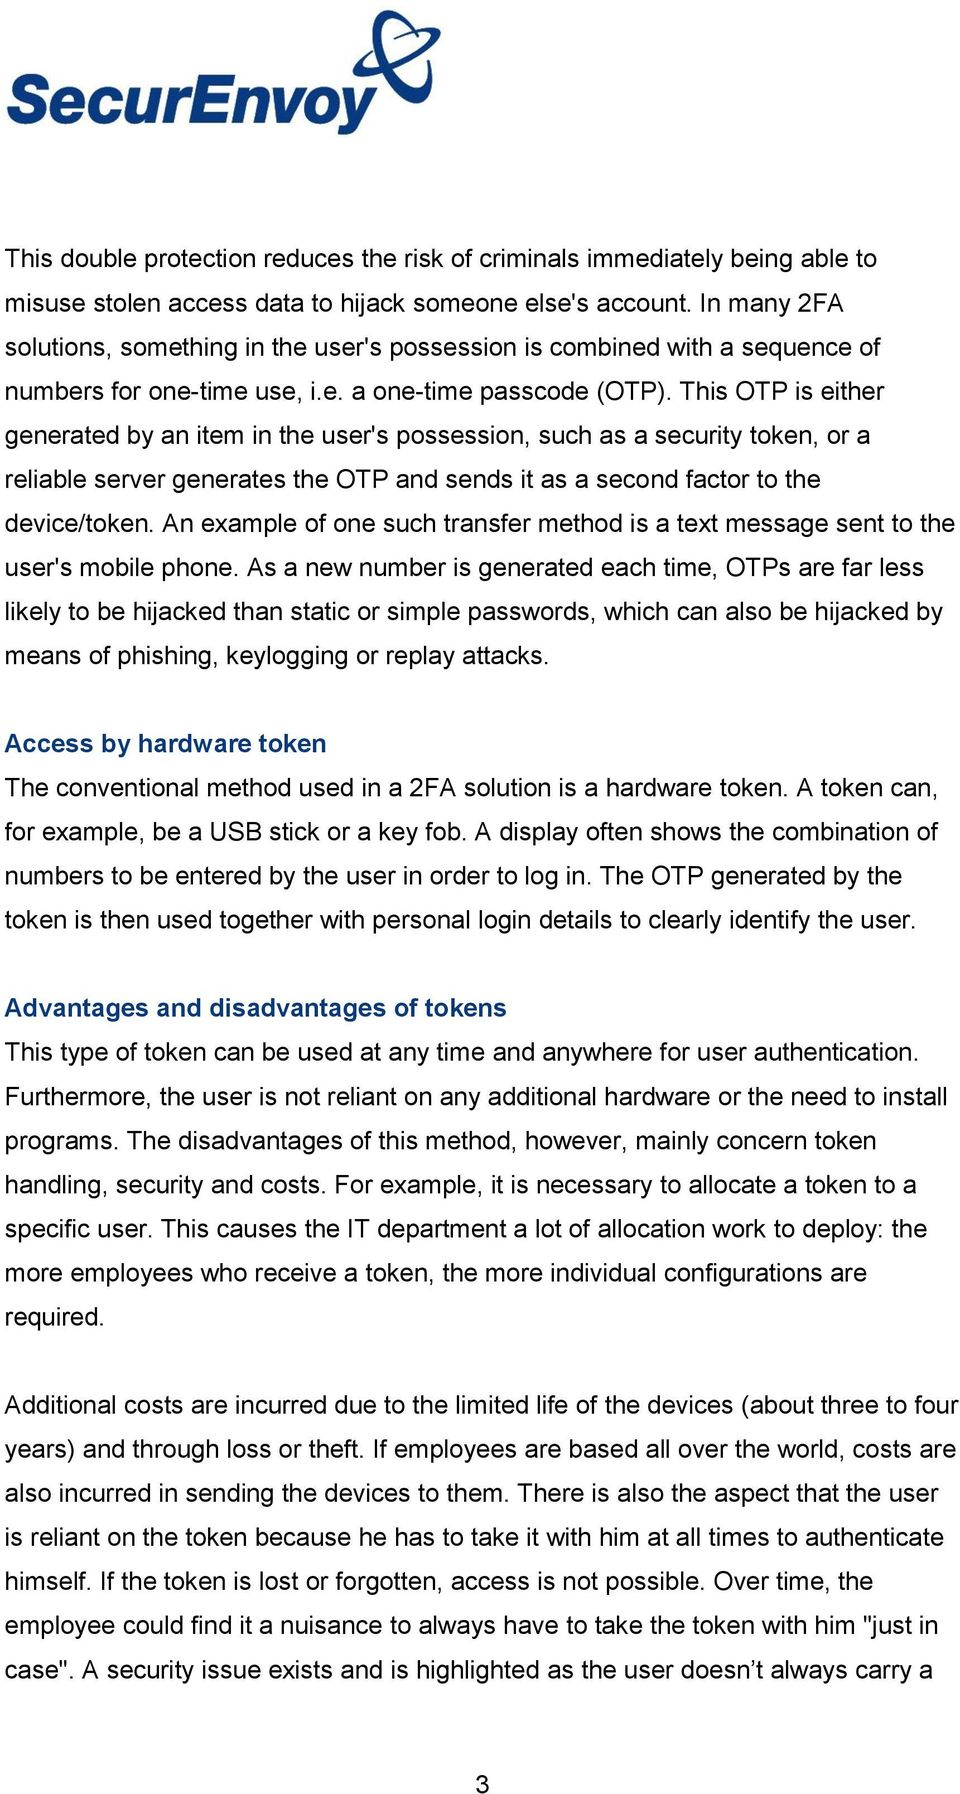 This OTP is either generated by an item in the user's possession, such as a security token, or a reliable server generates the OTP and sends it as a second factor to the device/token.